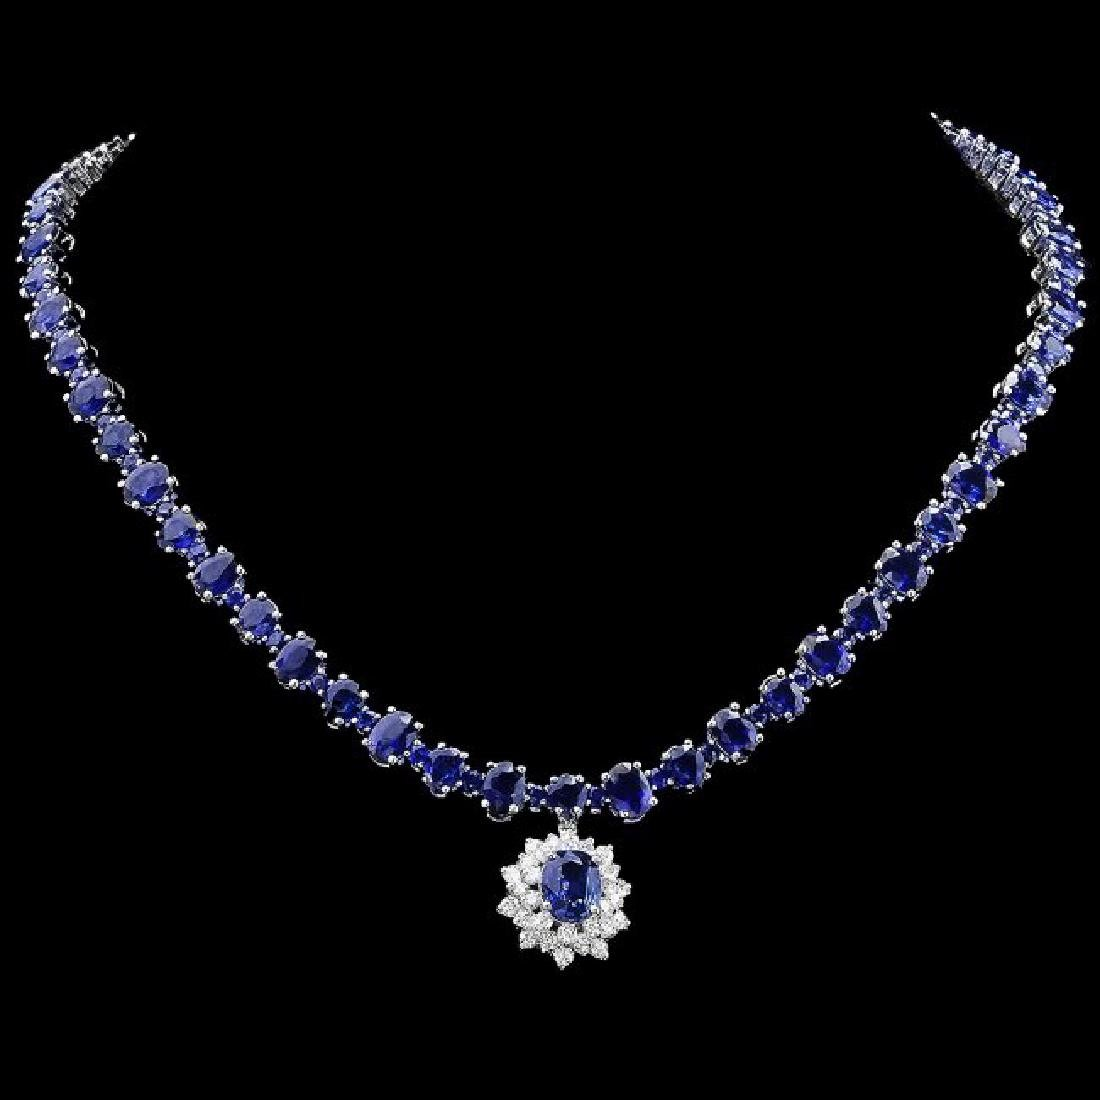 14k Gold 49.5ct Sapphire 1.70ct Diamond Necklace